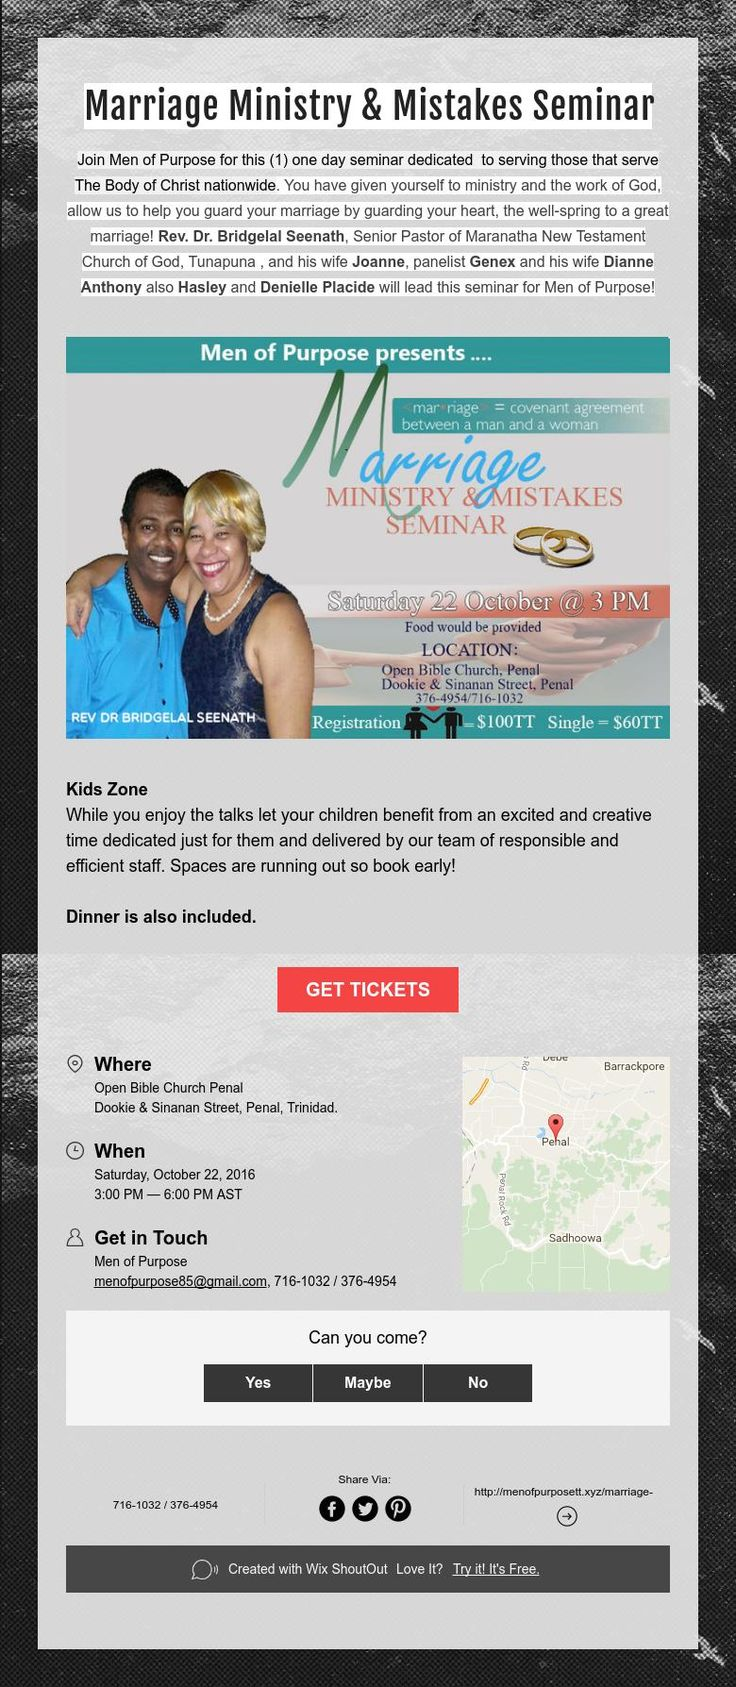 Marriage Ministry & Mistakes Seminar